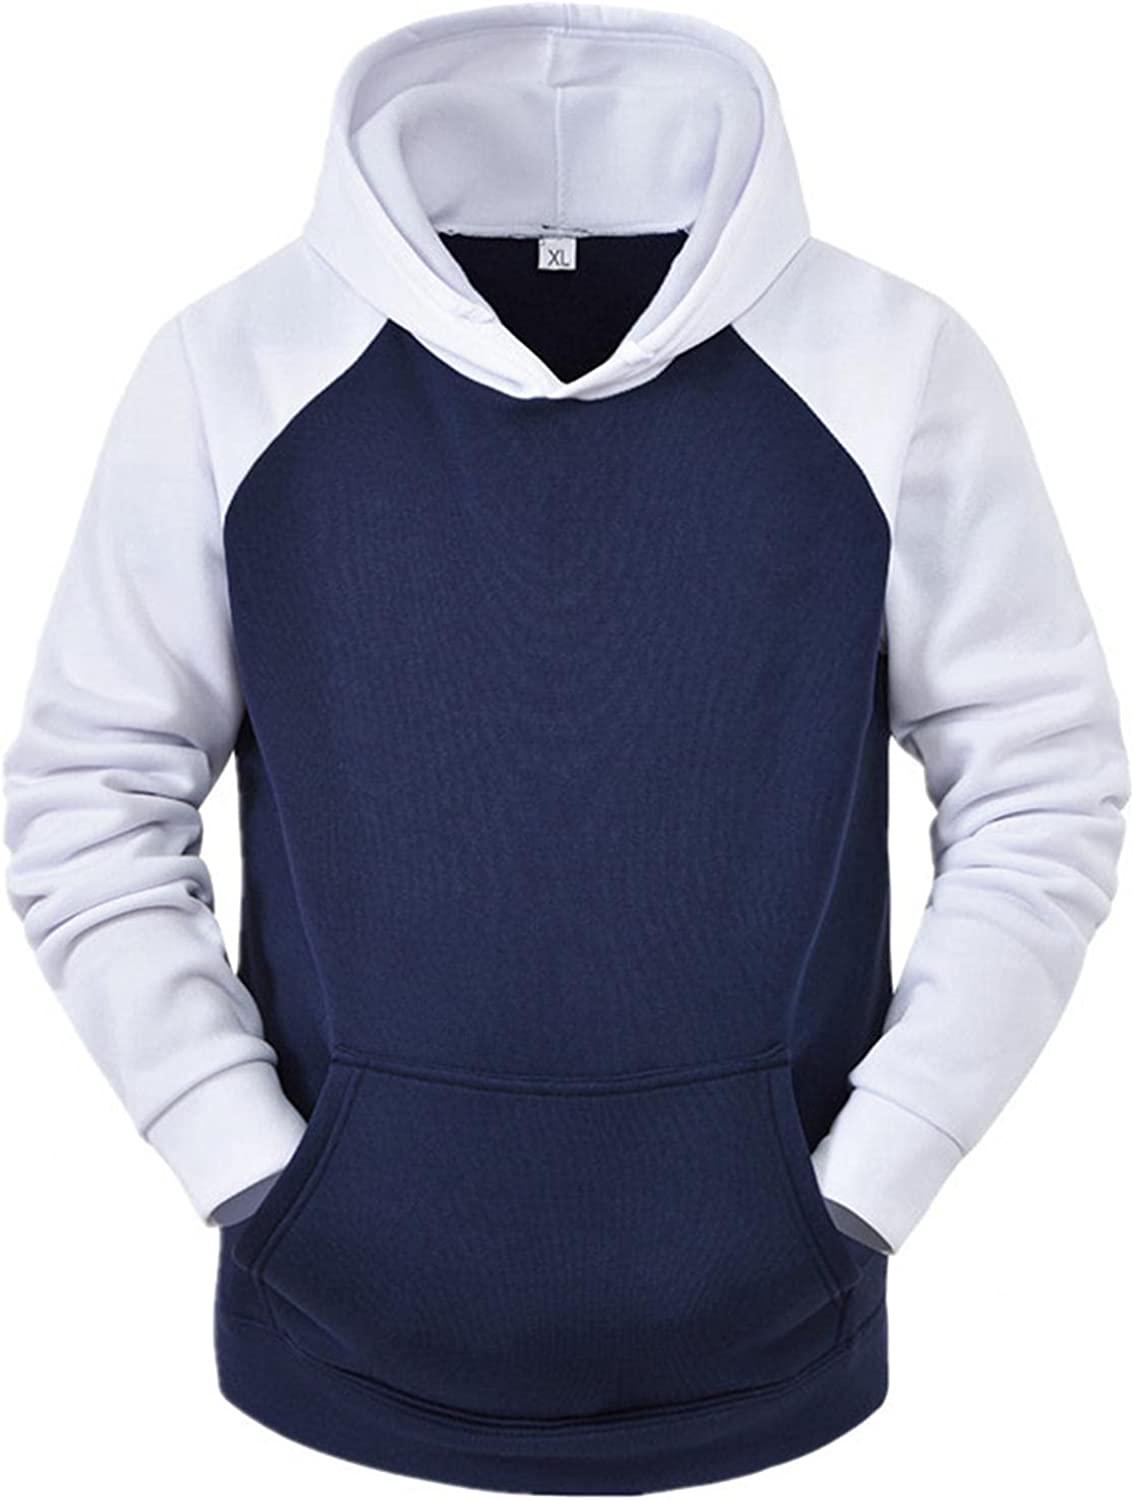 Men's Hoodie Patchwork Athletic Sweatshirt Long Sleeve Drawstring Pullover Tops Jacket Gym Hooded Outwear with Pockets